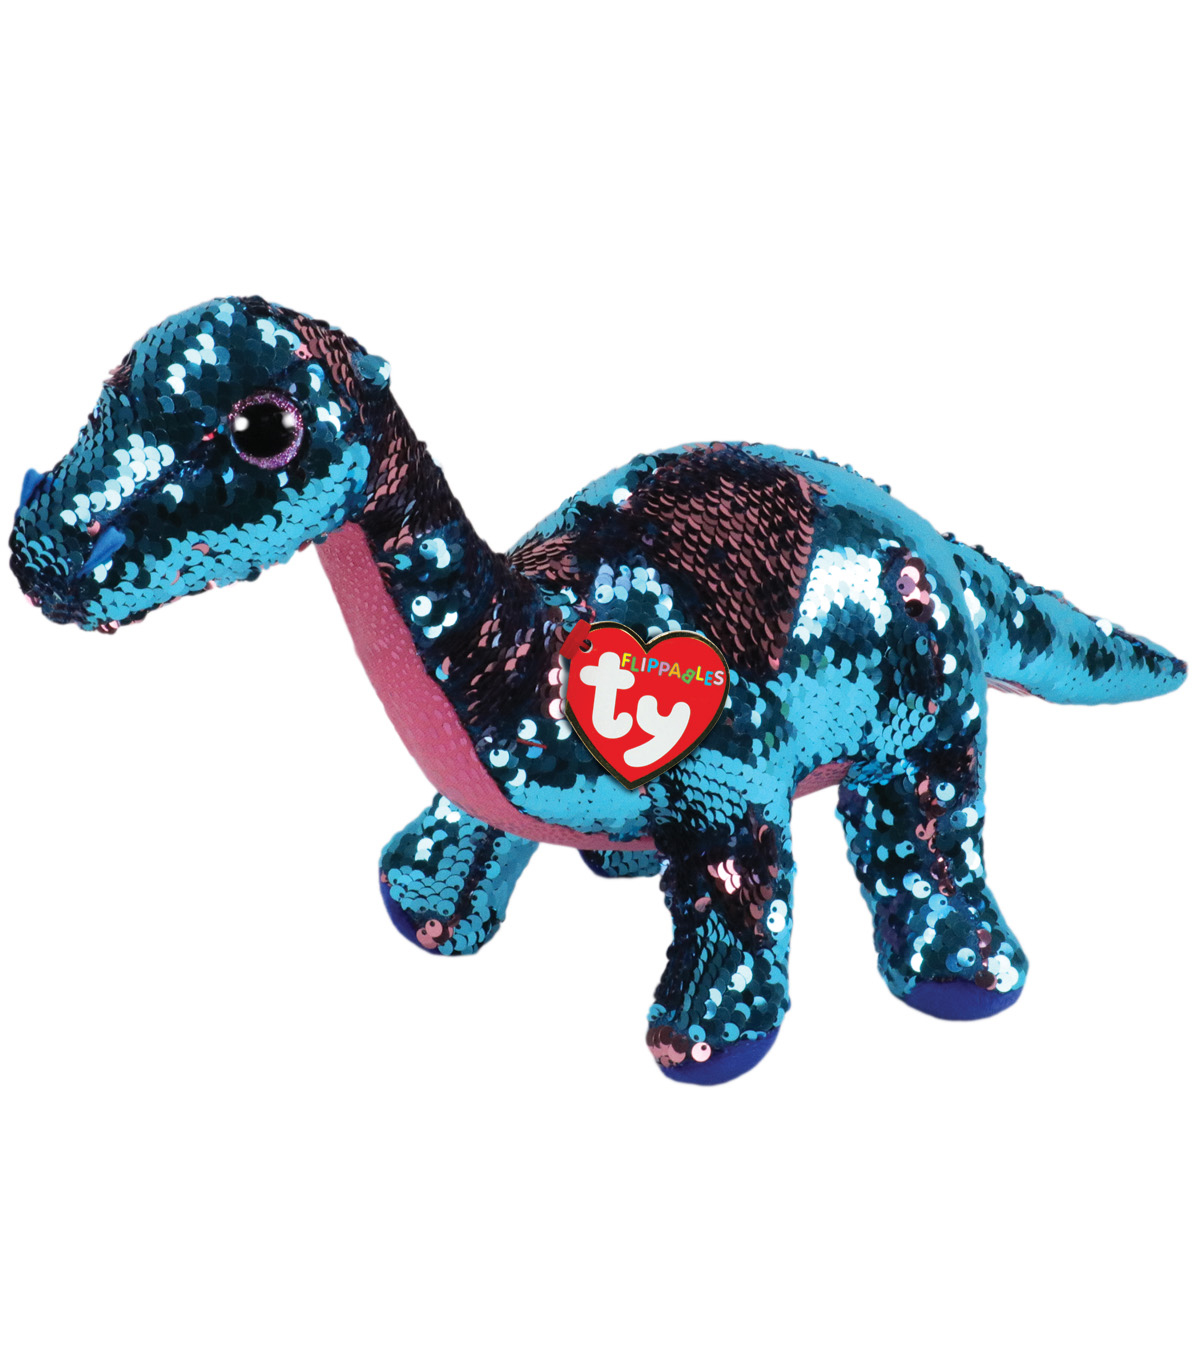 Ty Inc. Flippables Medium Sequin Tremor Dinosaur